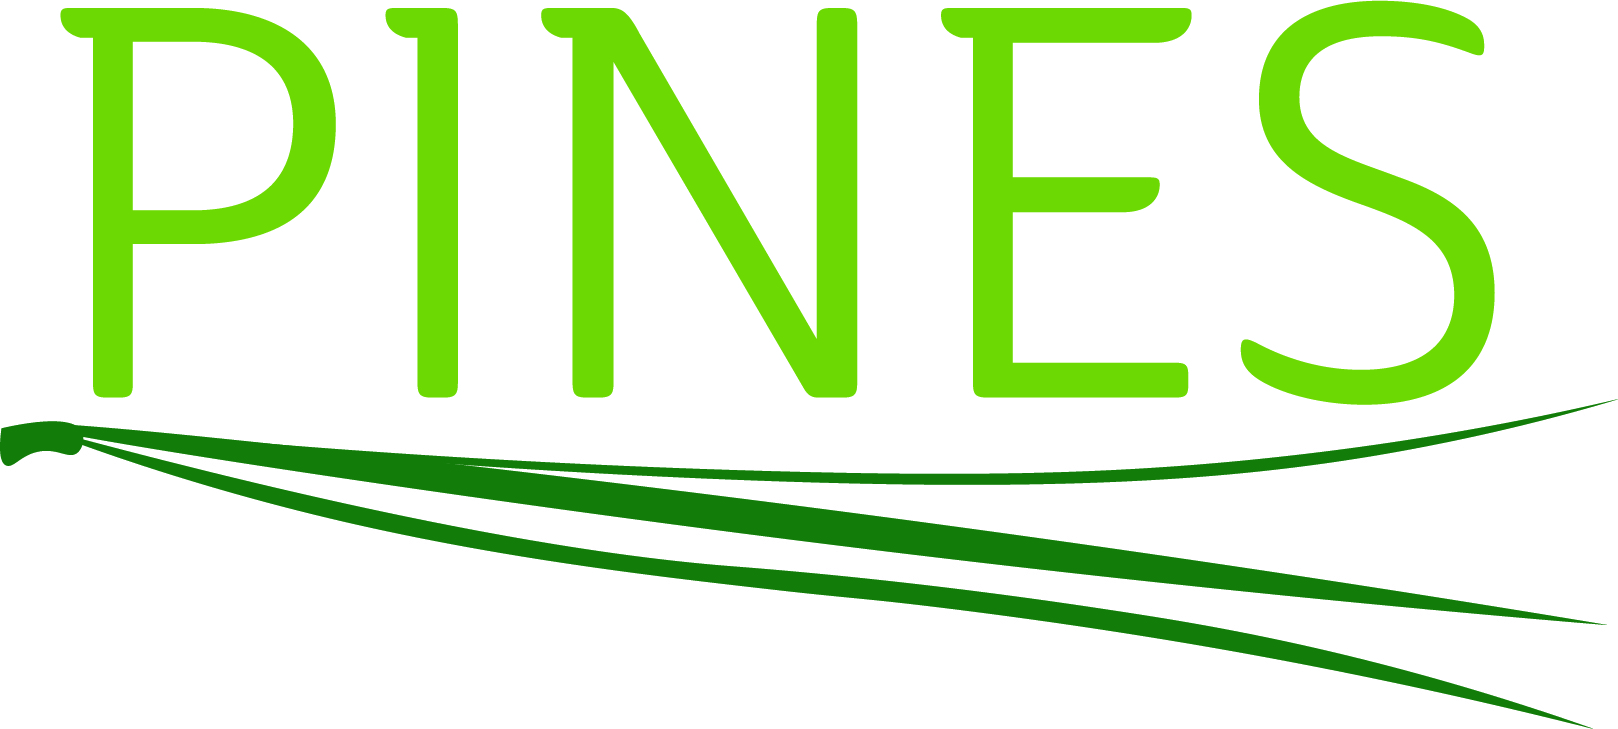 Image of PINES network logo